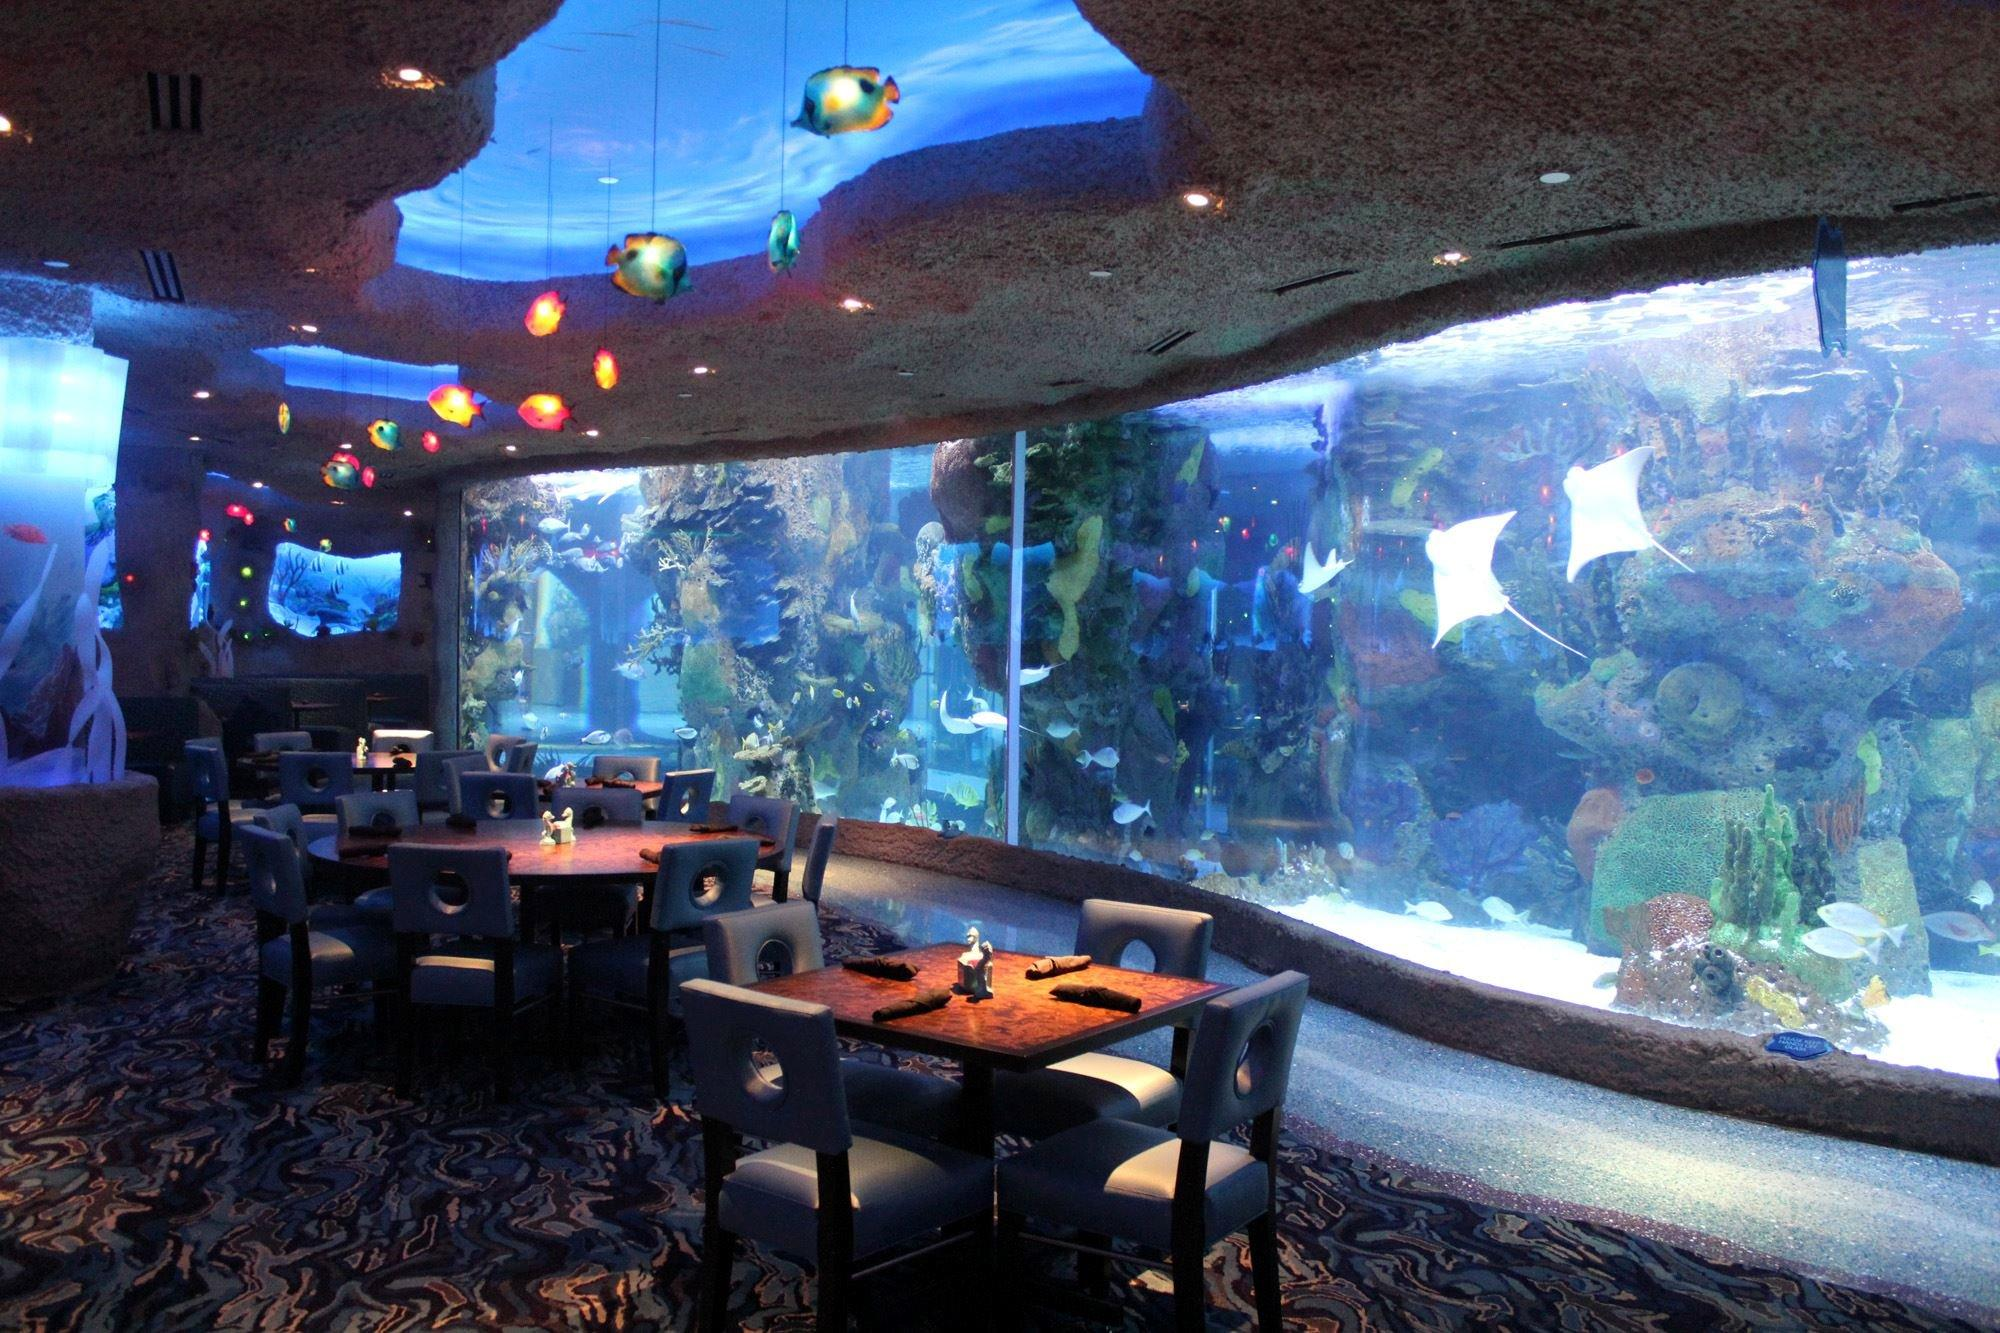 Aquarium restaurant coupons near me in nashville 8coupons for Fish grill near me